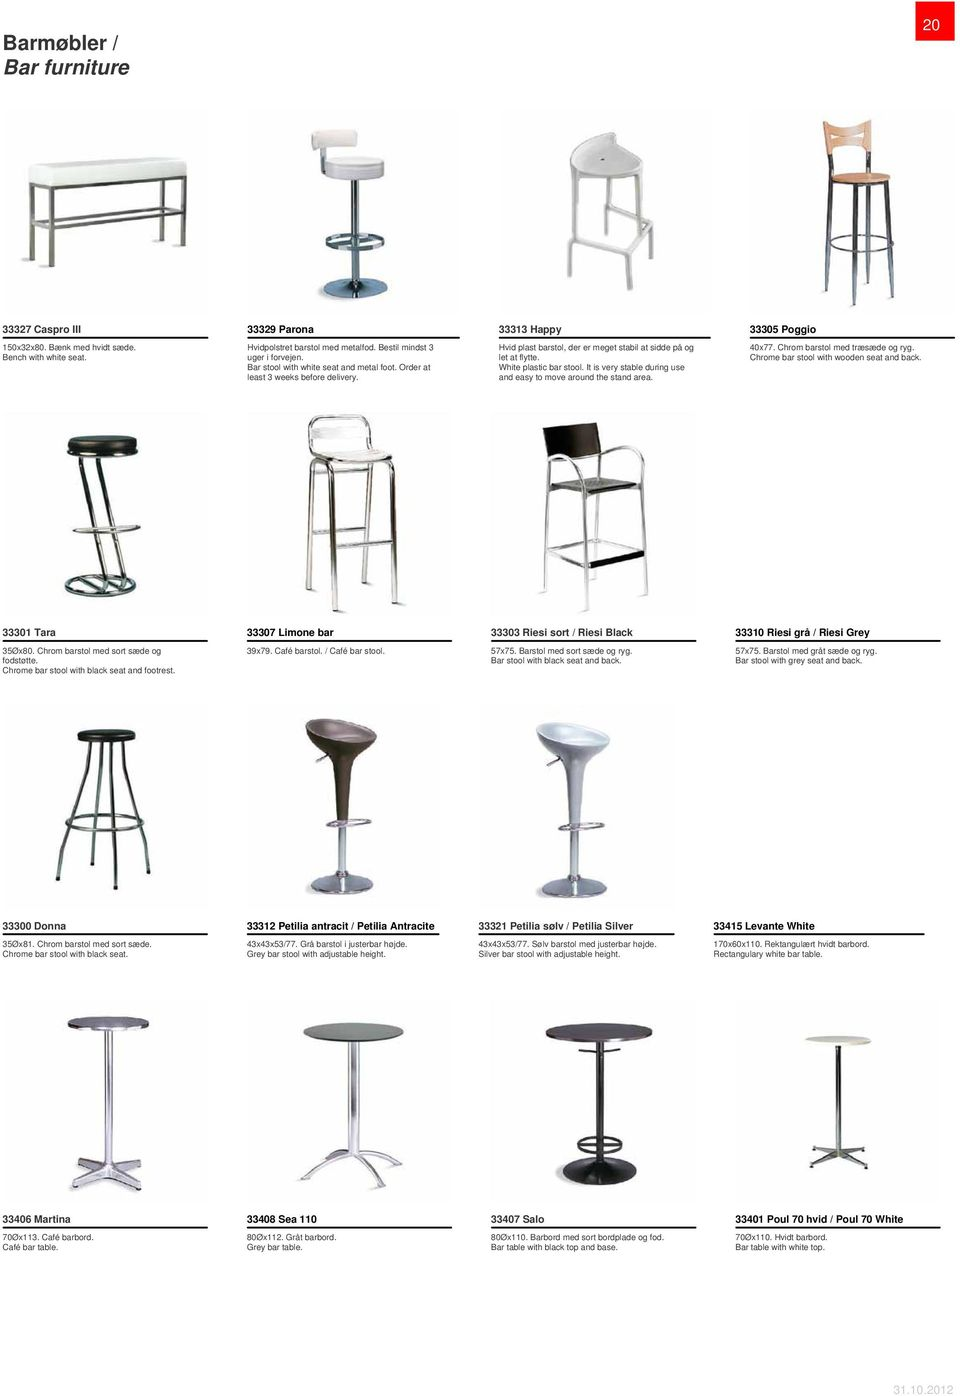 White plastic bar stool. It is very stable during use and easy to move around the stand area. 40x77. Chrom barstol med træsæde og ryg. Chrome bar stool with wooden seat and back.